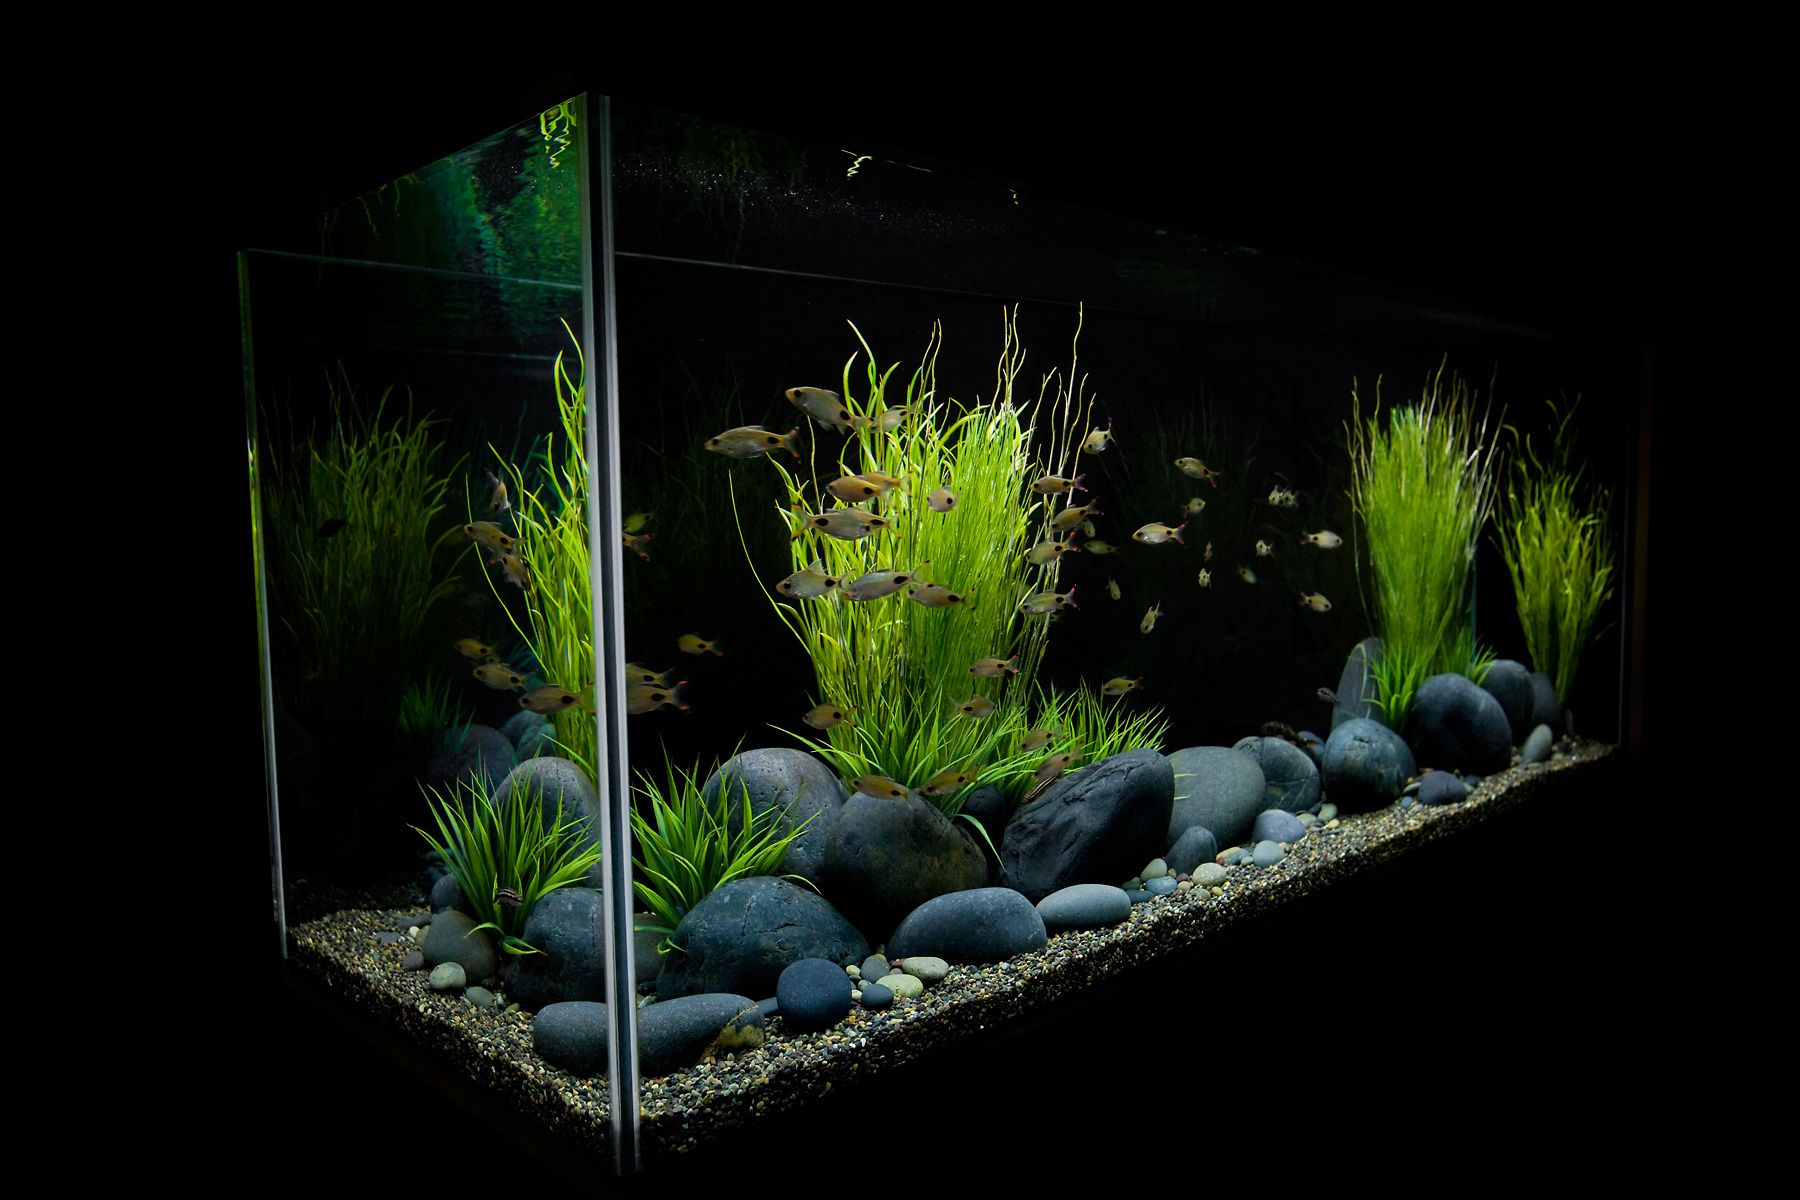 Freshwater aquarium fish angelfish - Transform The Way Your Home Looks Using A Fish Tank